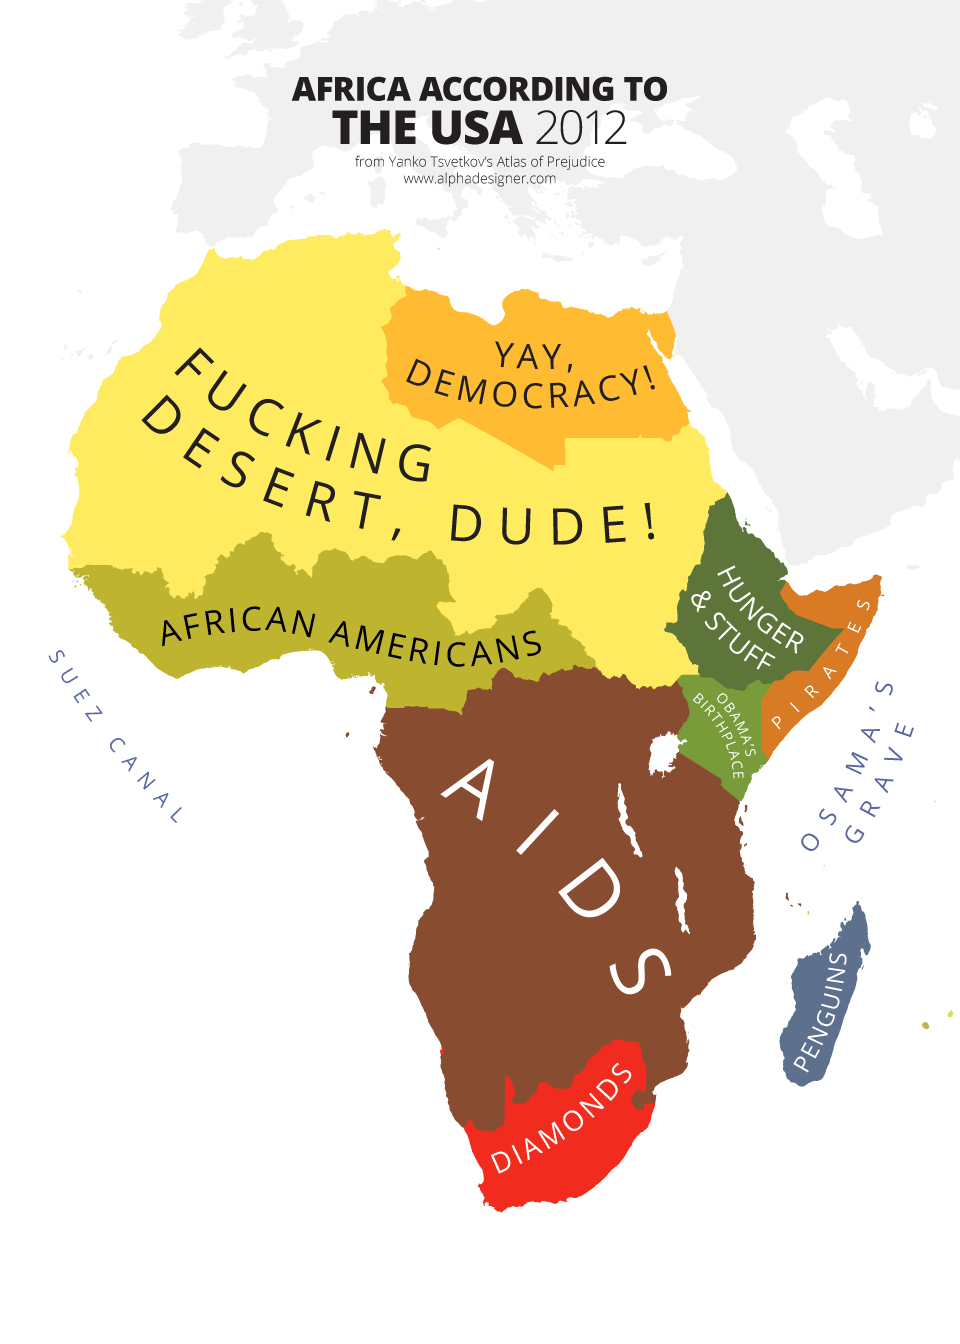 Africa According To The Usa 2012 From The Atlas Of Prejudice Book